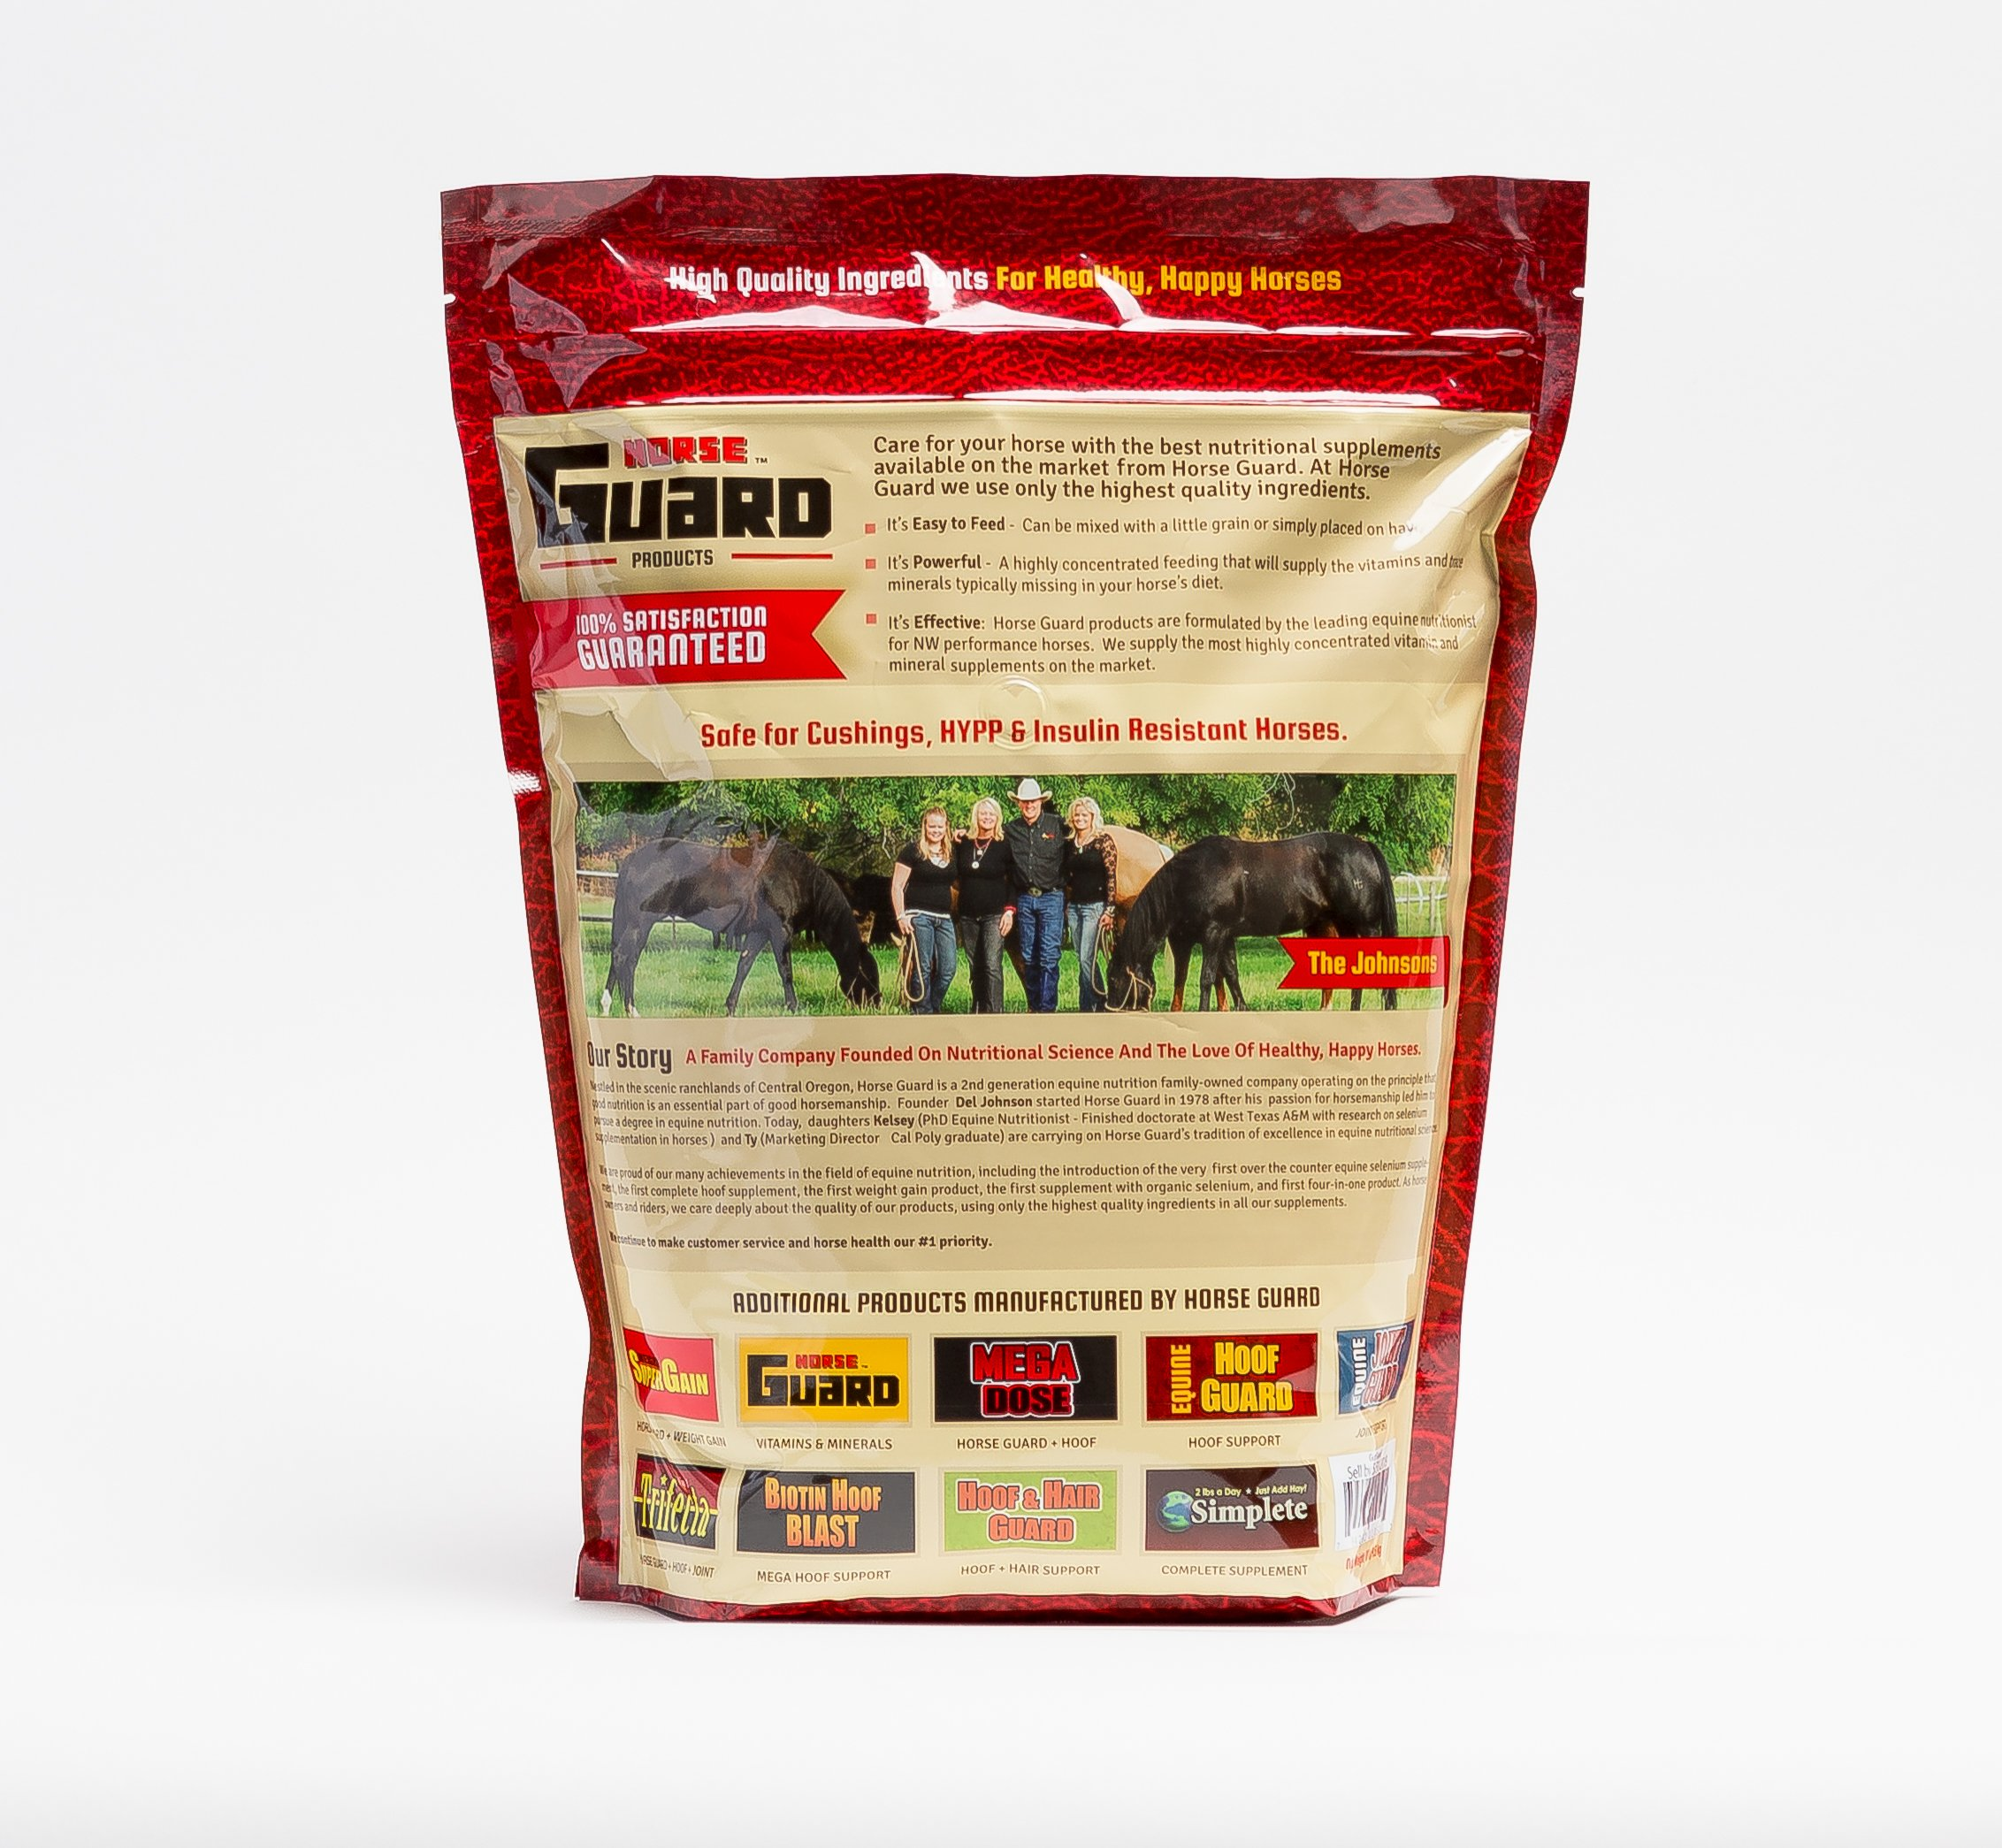 Horse Guard HOOF & HAIR GUARD EQUINE HOOF SUPPLEMENT AND EQUINE COAT SUPPLEMENT WITH AMINO ACIDS, BIOTIN, METHIONINE & SOY OIL, 10 lb by Horse Guard (Image #2)